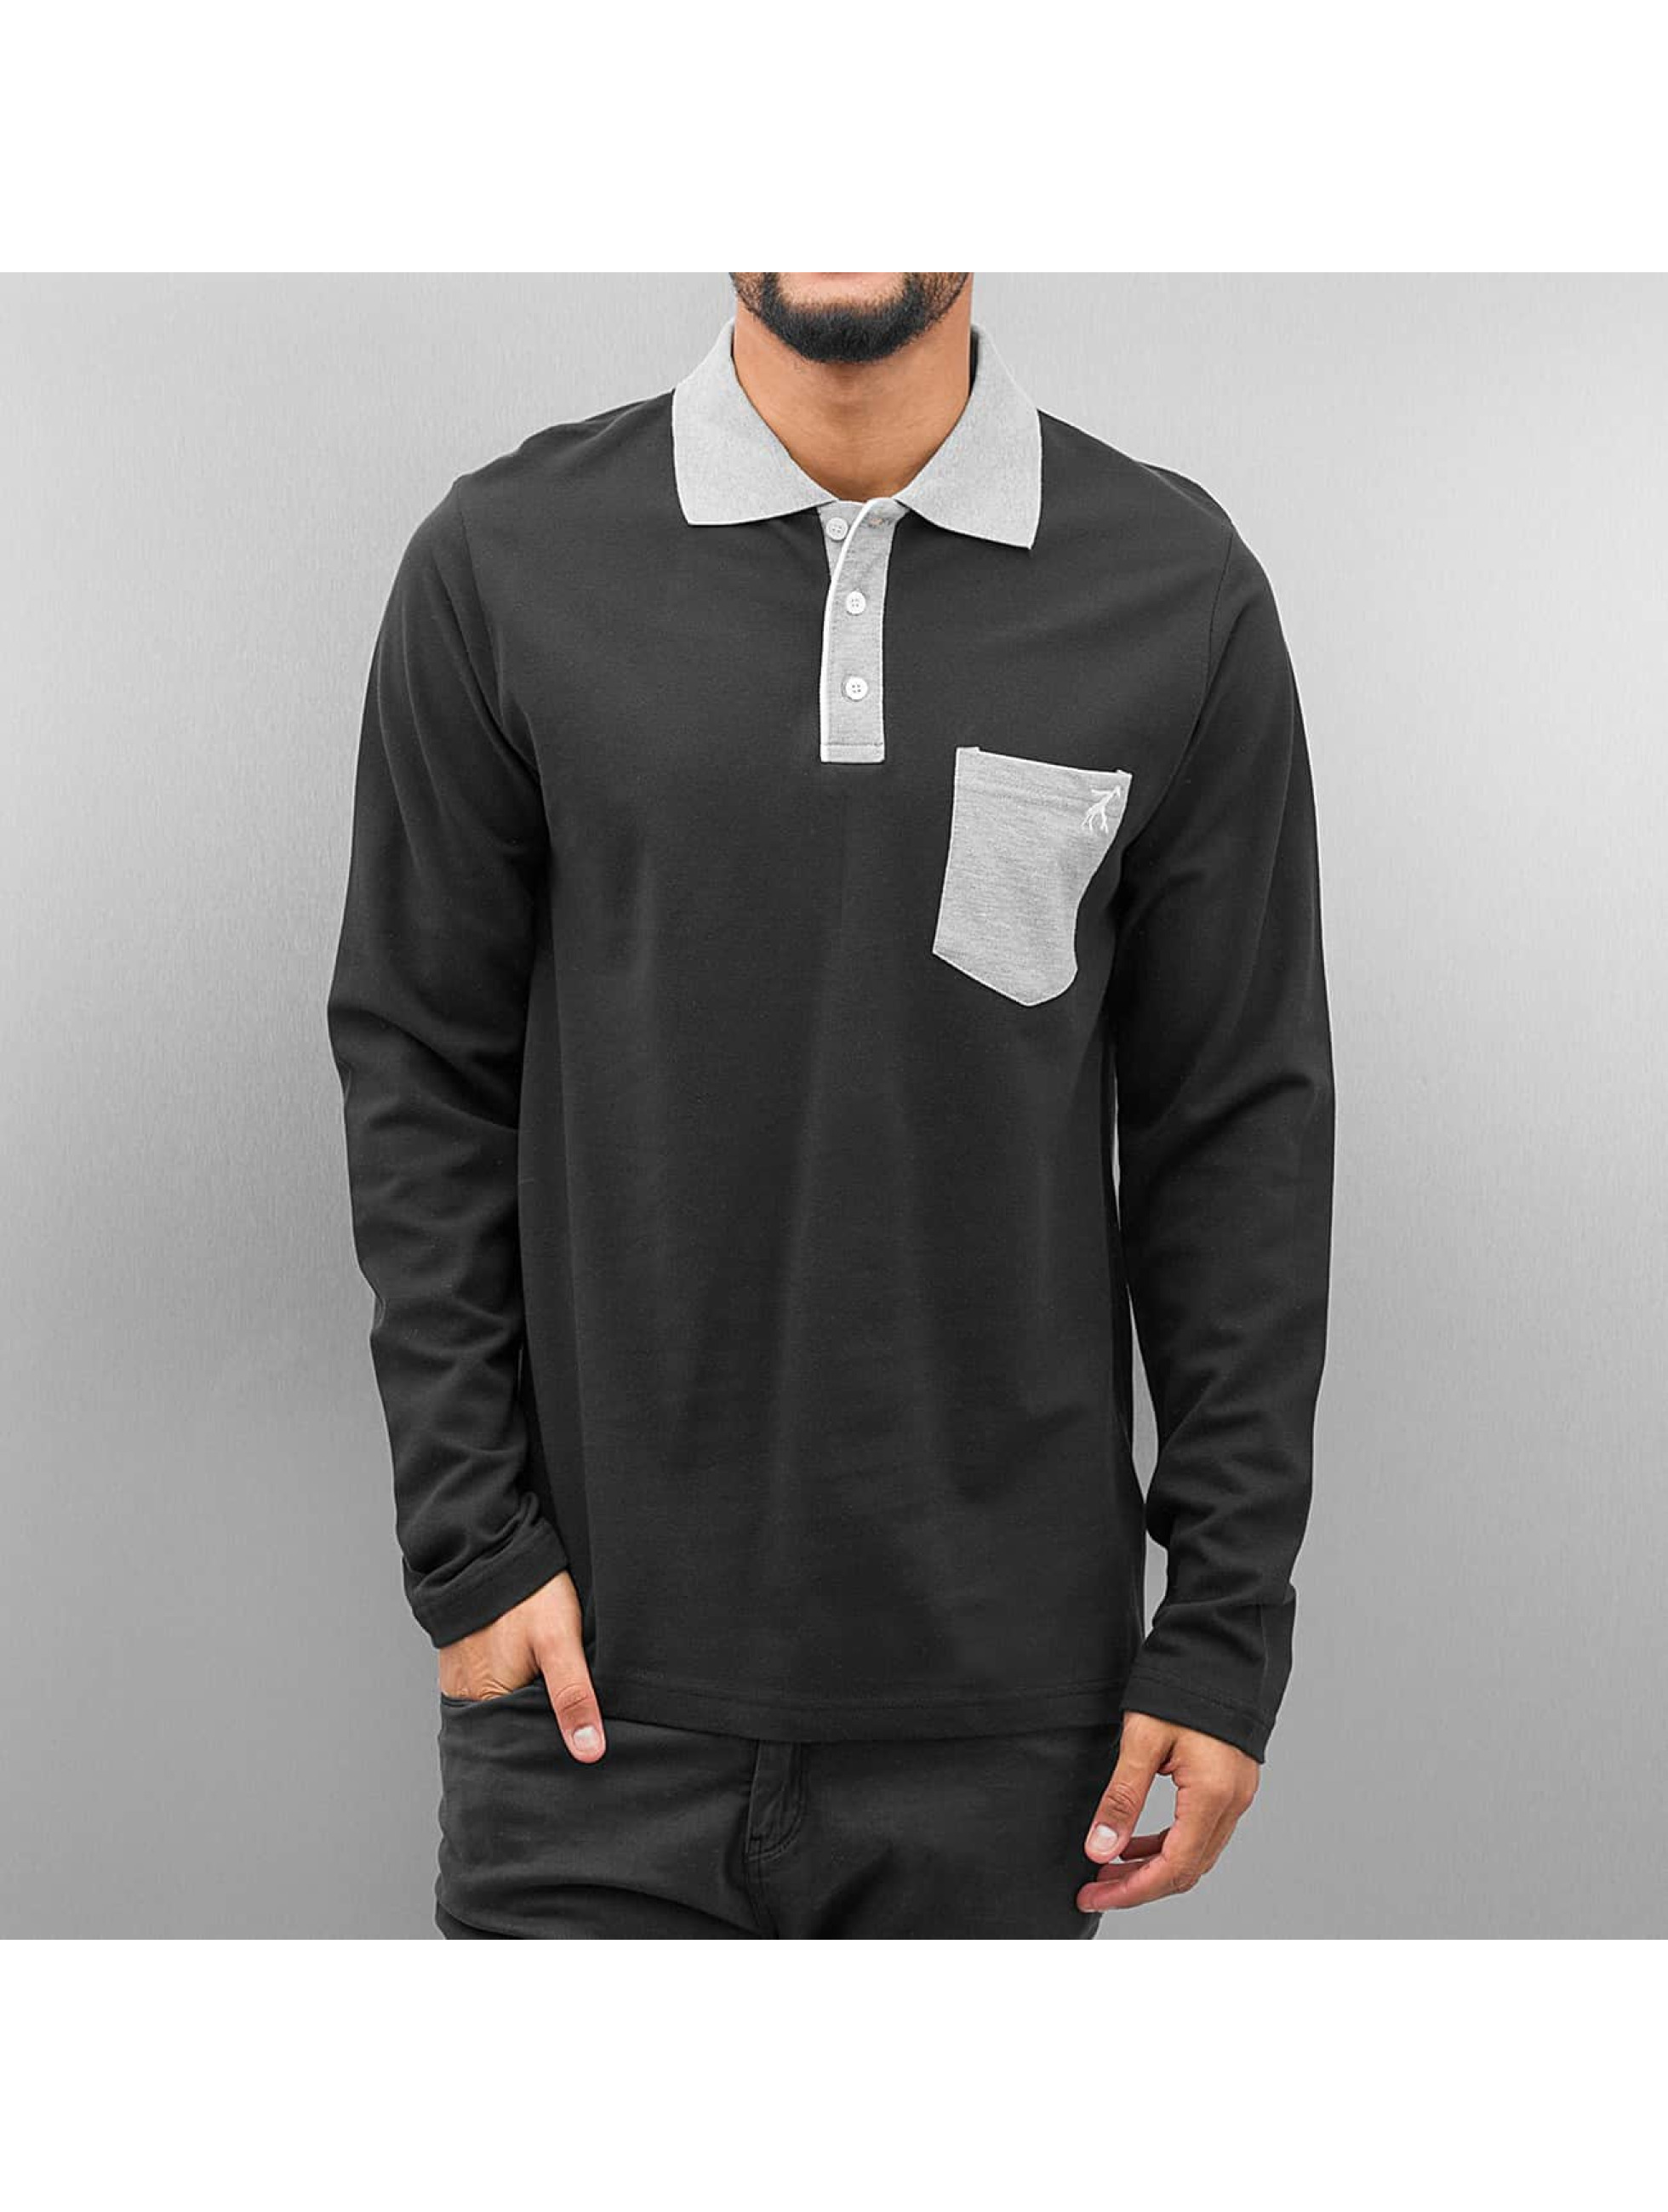 Cazzy Clang / Poloshirt Pula in black S